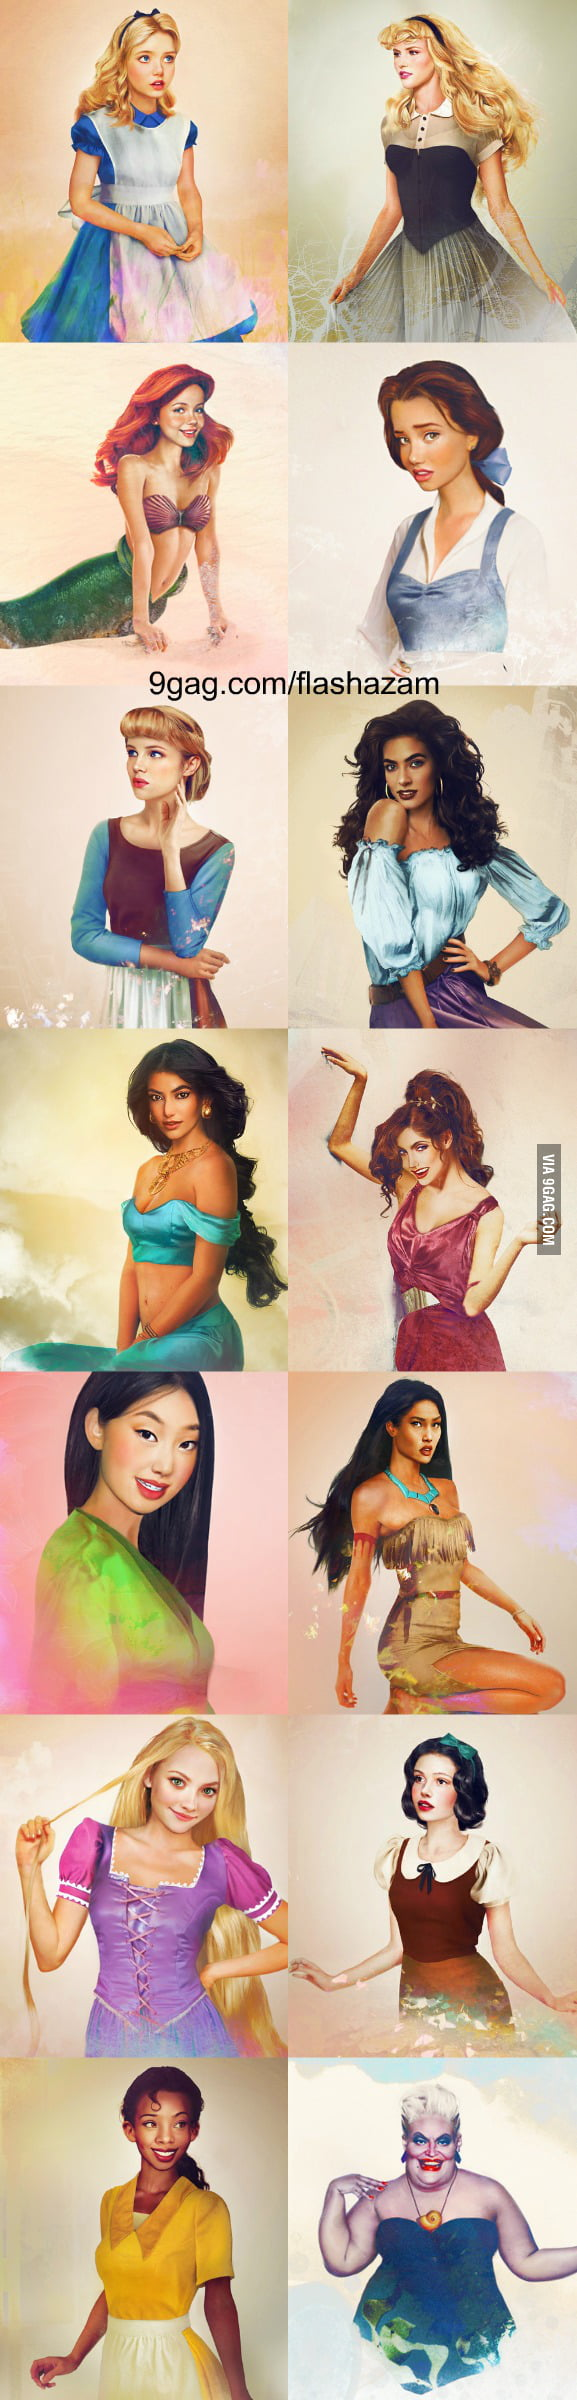 Real Life Disney Characters